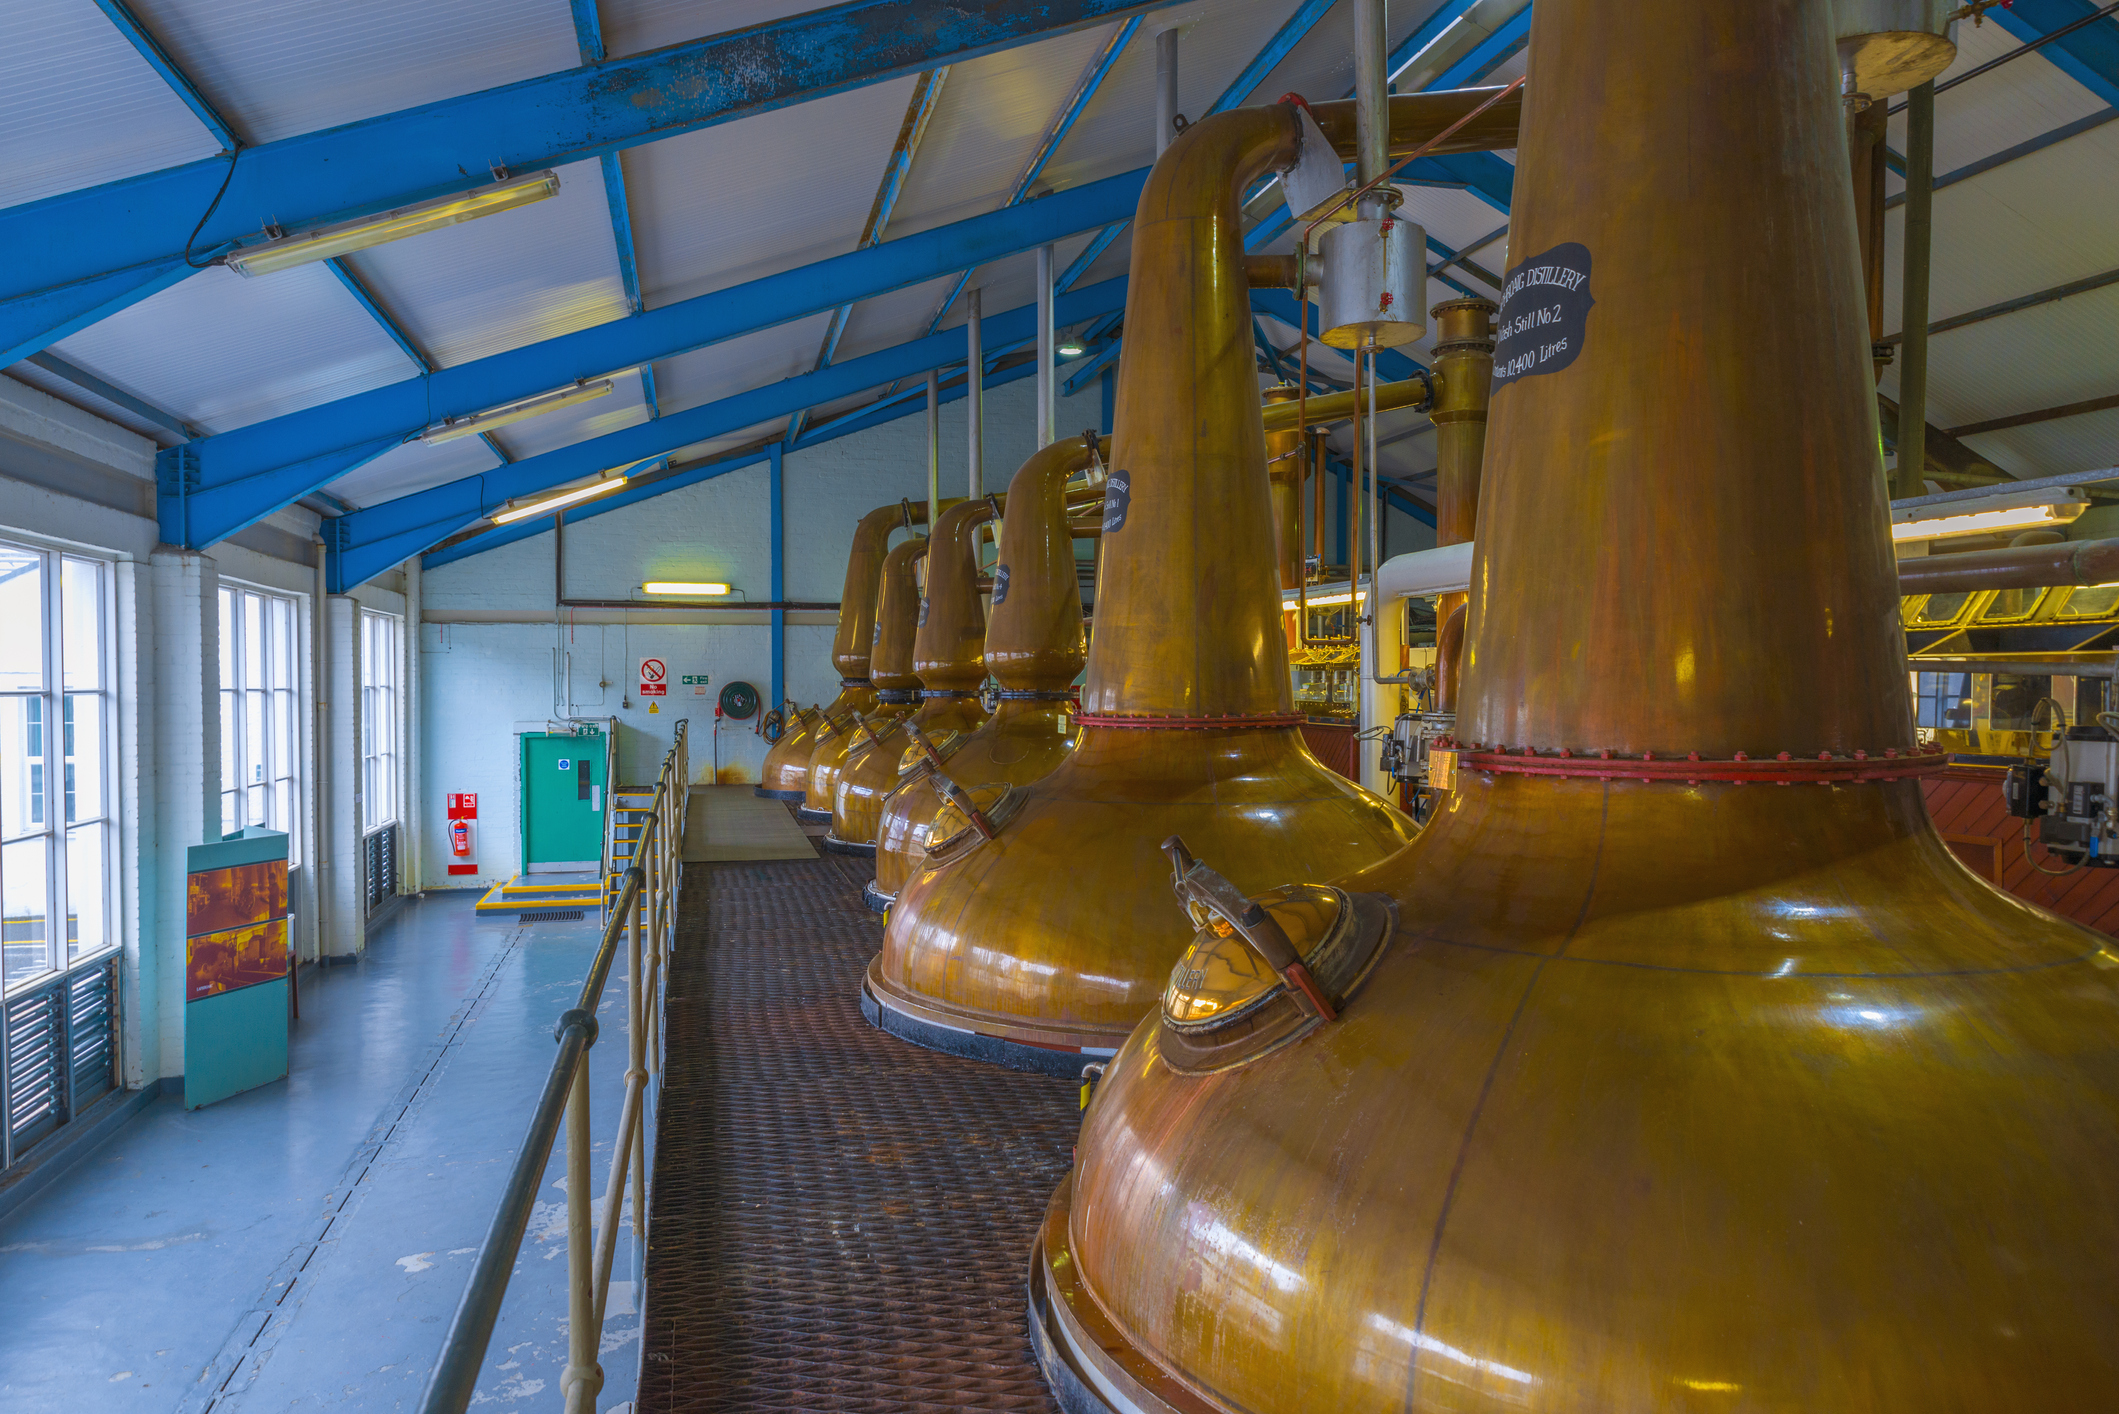 Why is peated whisky made on Islay?